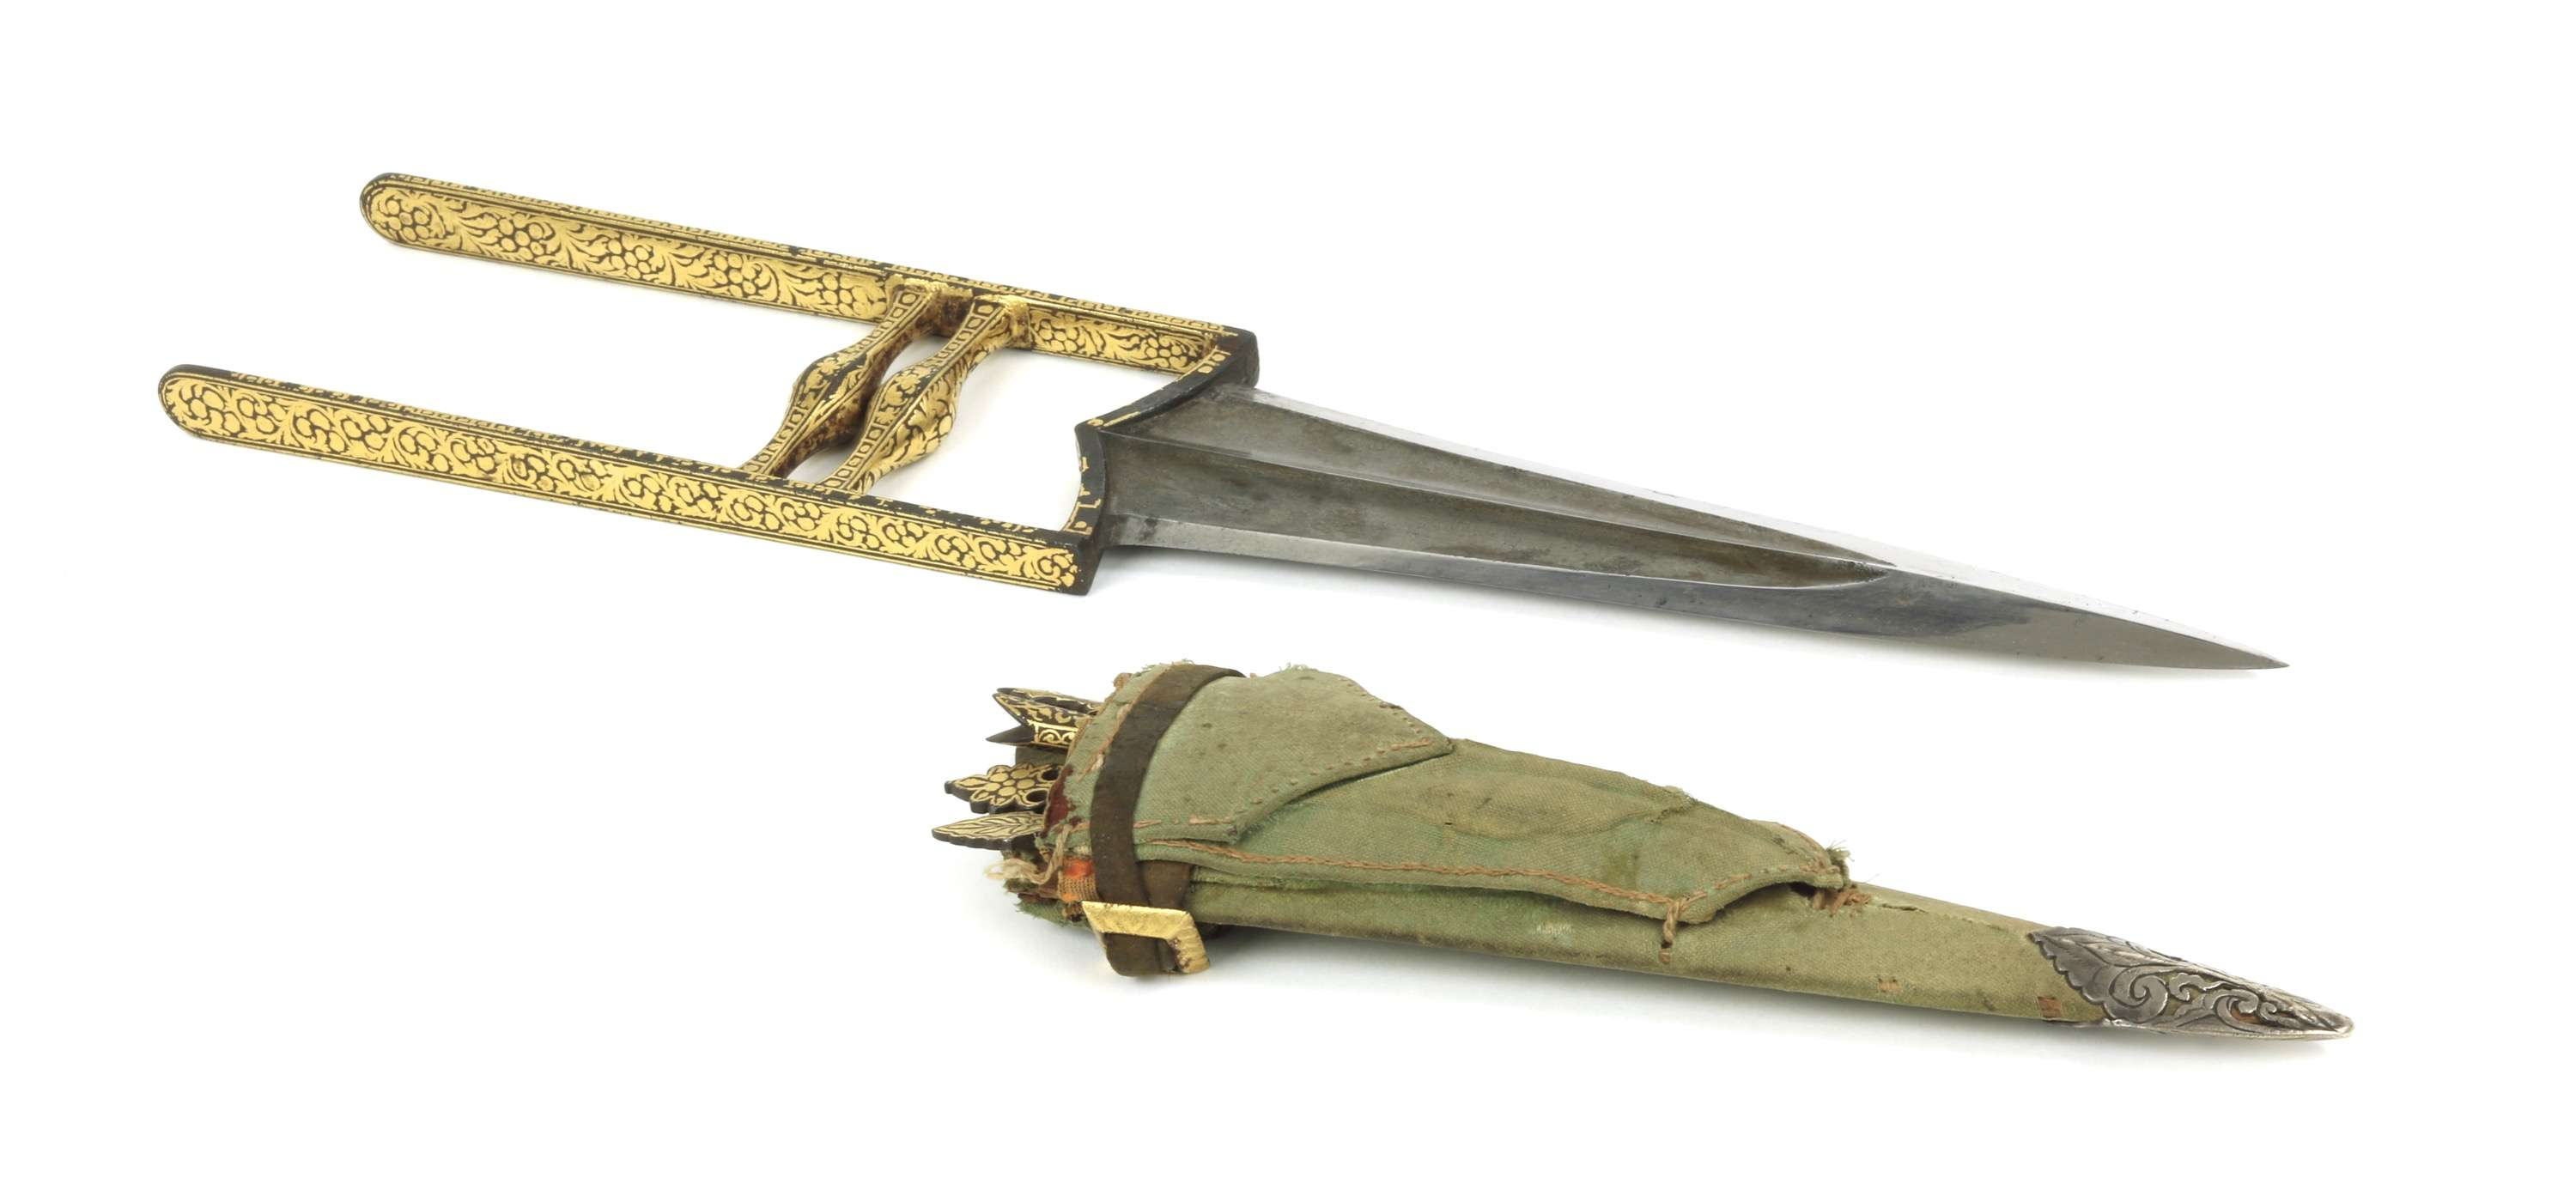 North Indian katar with tools